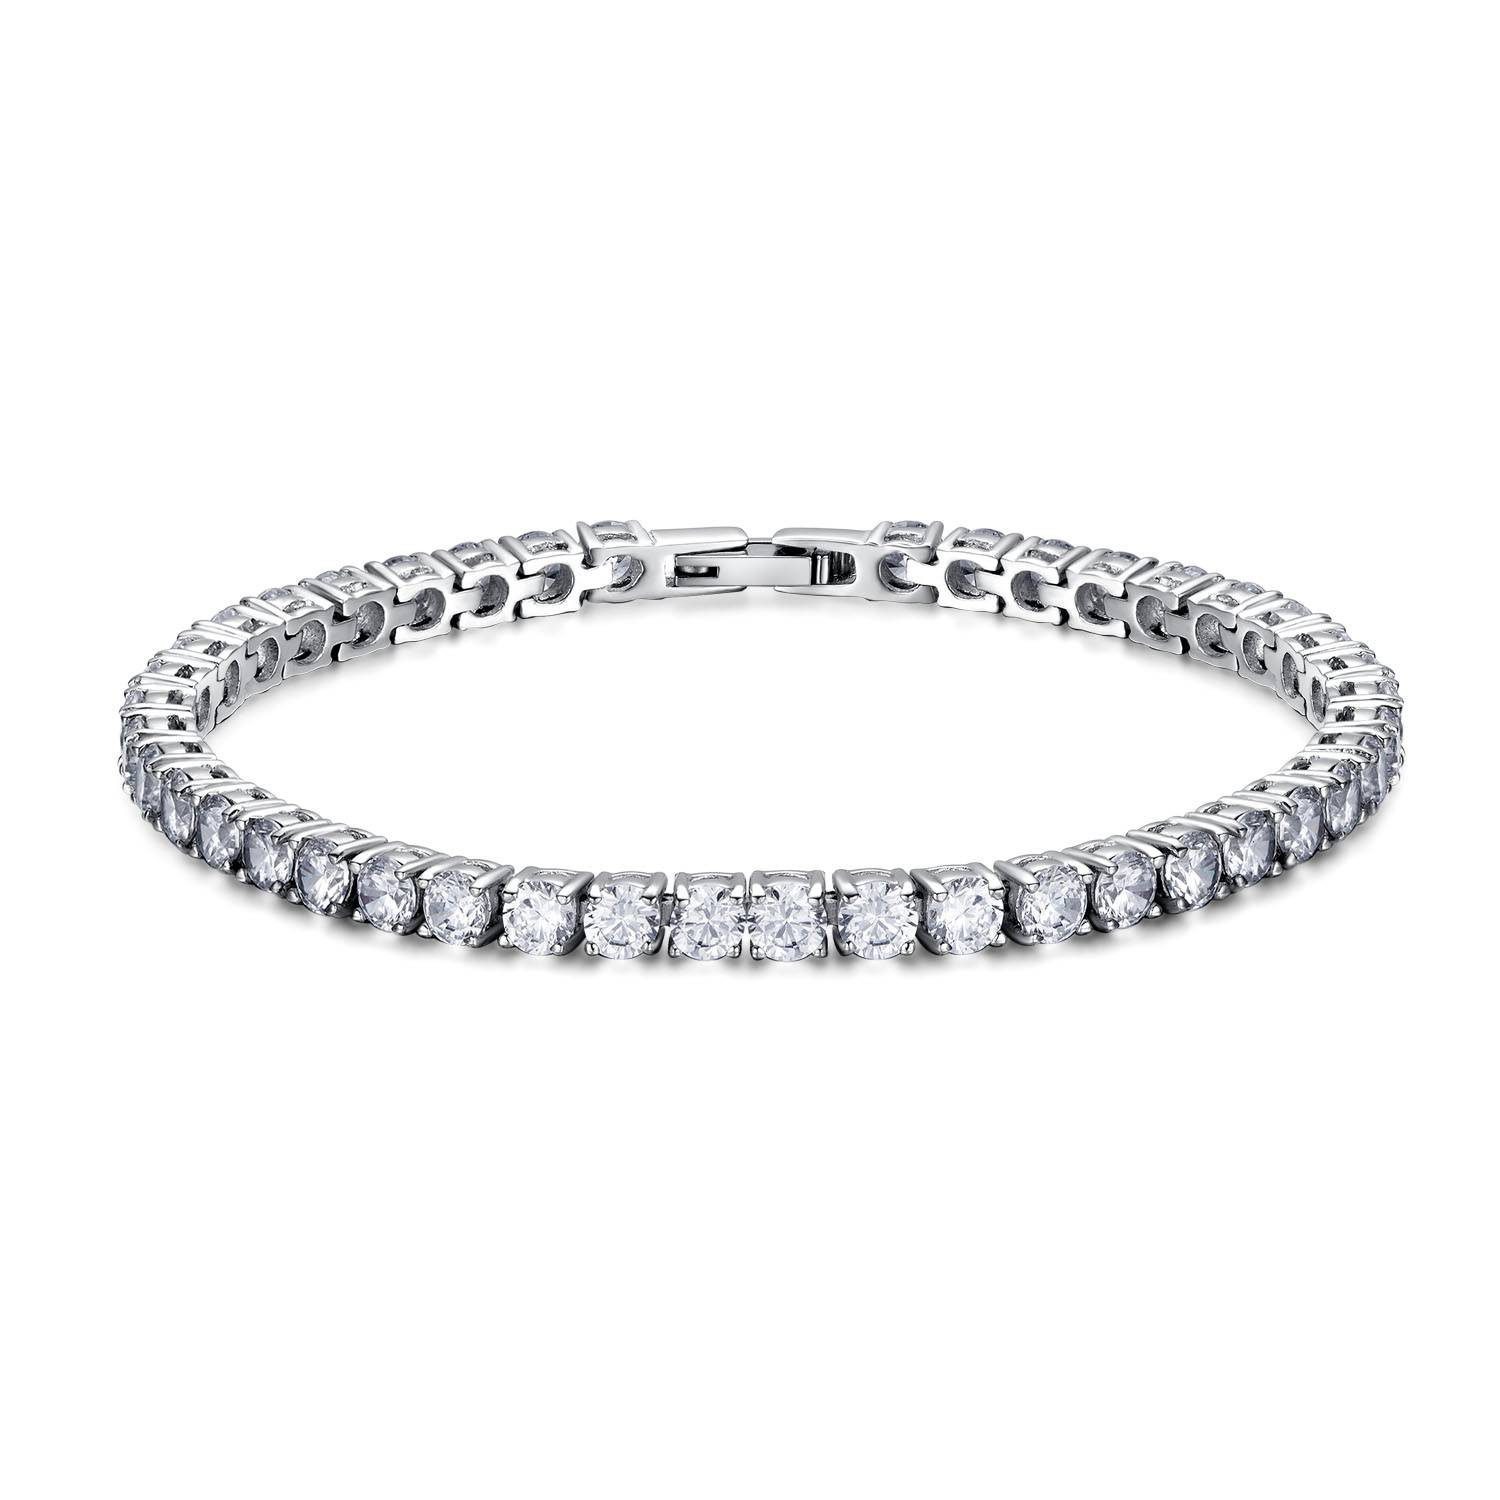 New Coming Classical 316L stainless steel four prong settings 4mm colors cz tennis bracelet